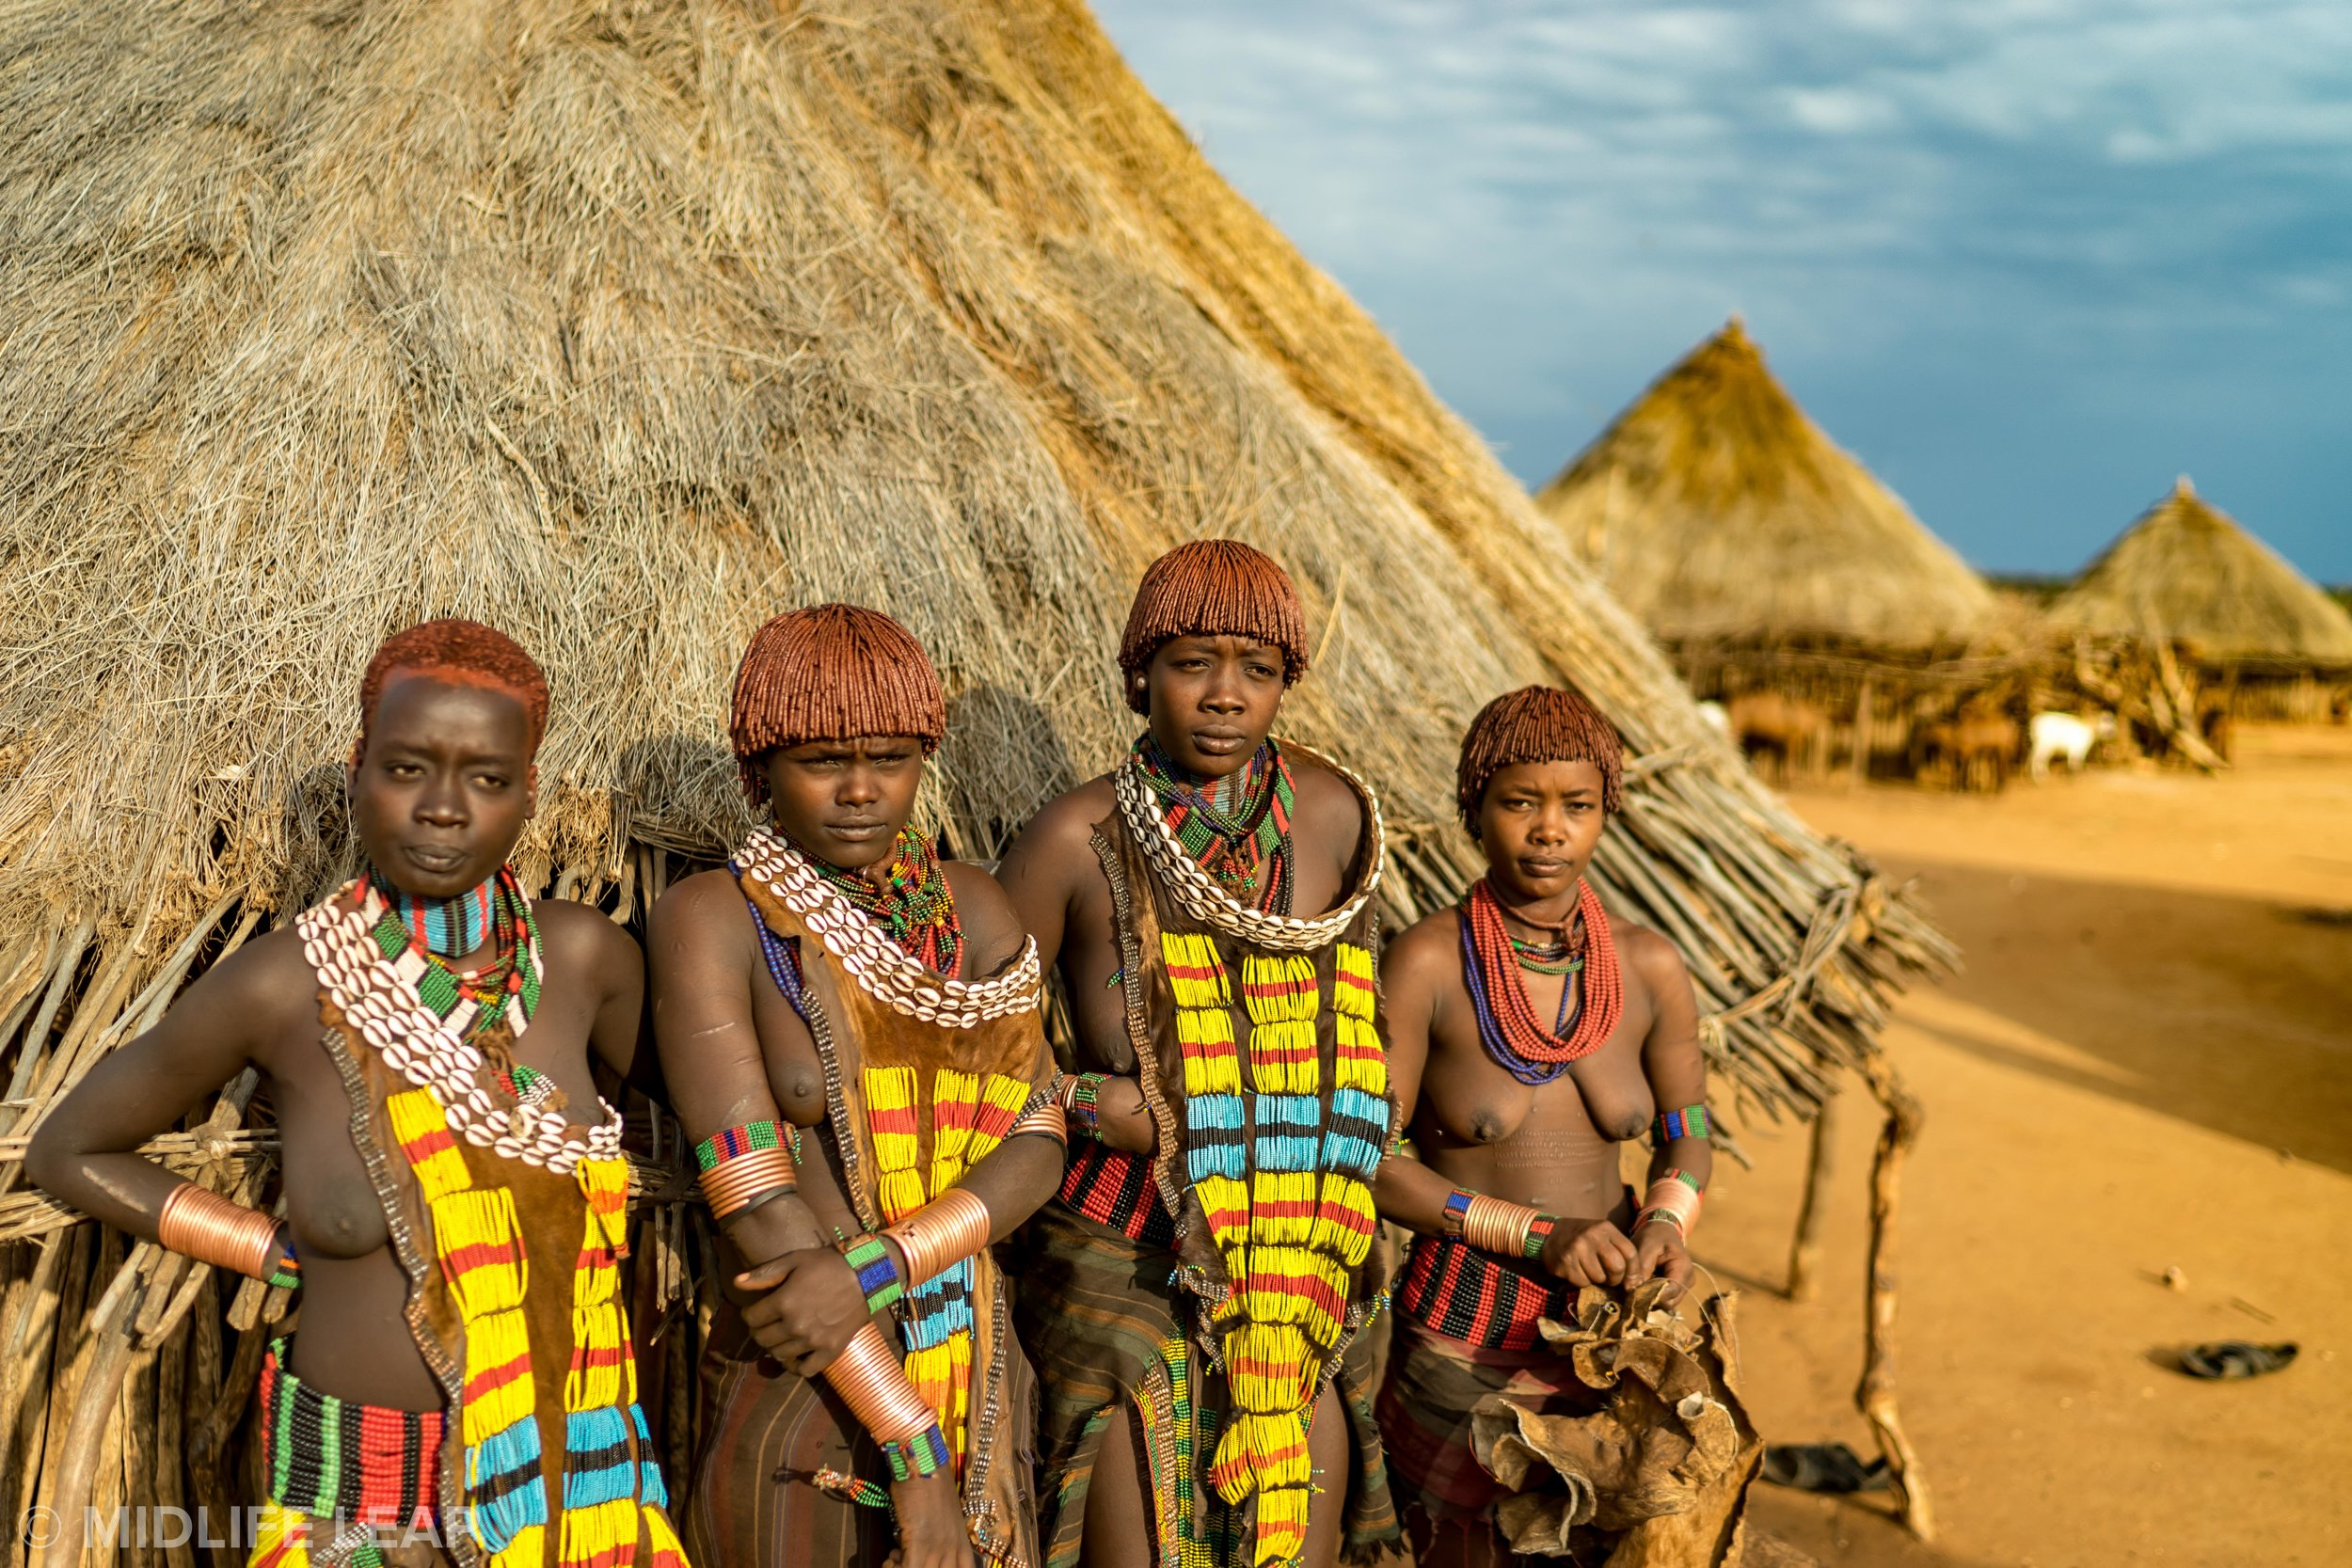 The women of the Hamar Tribe